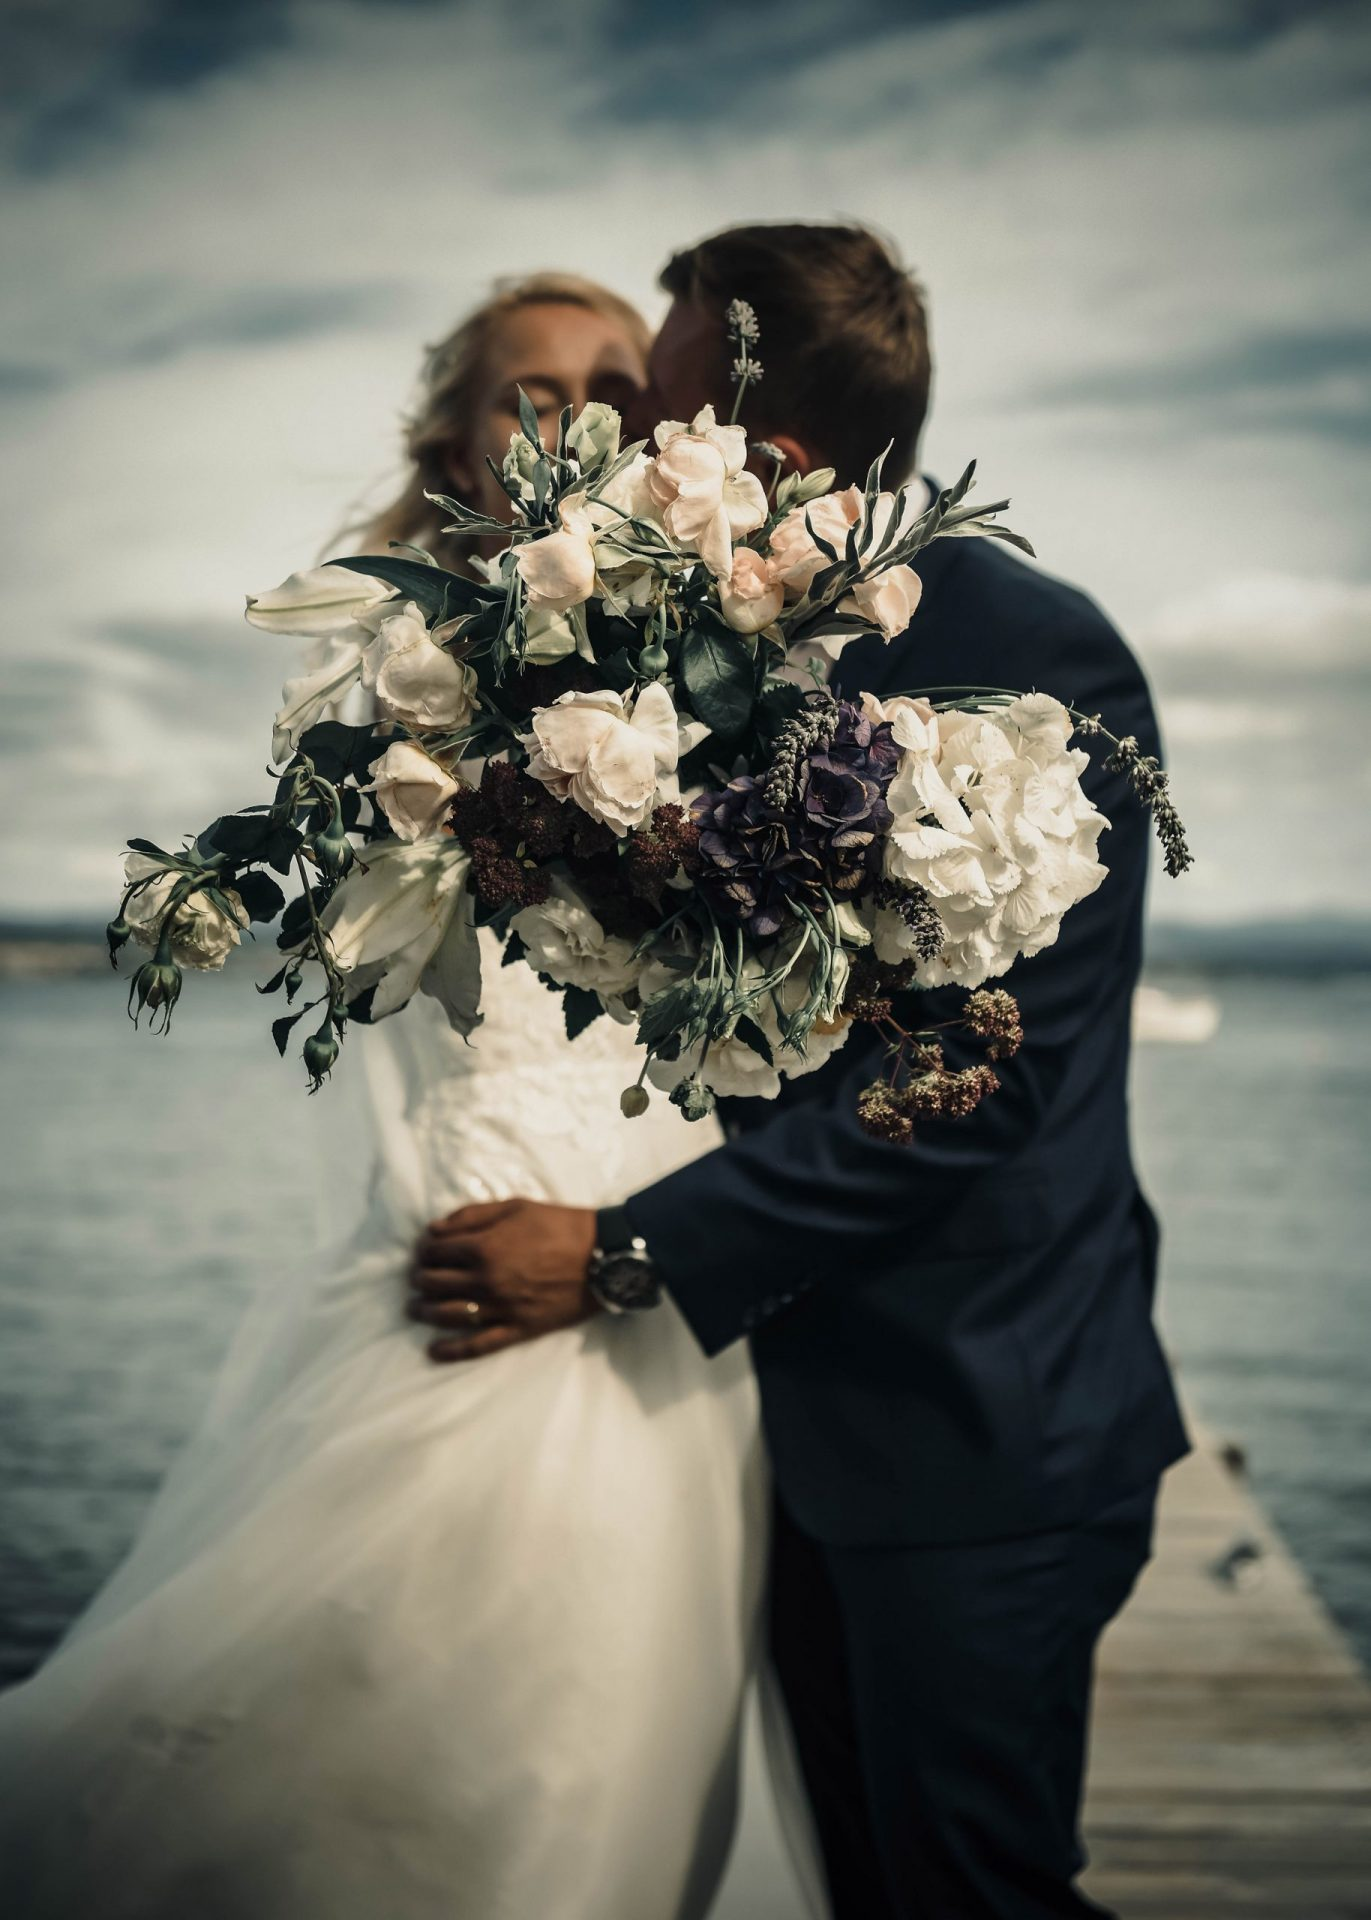 Husband And Wife Kiss On Their Wedding Day Outdoors. Love, Cheerful.